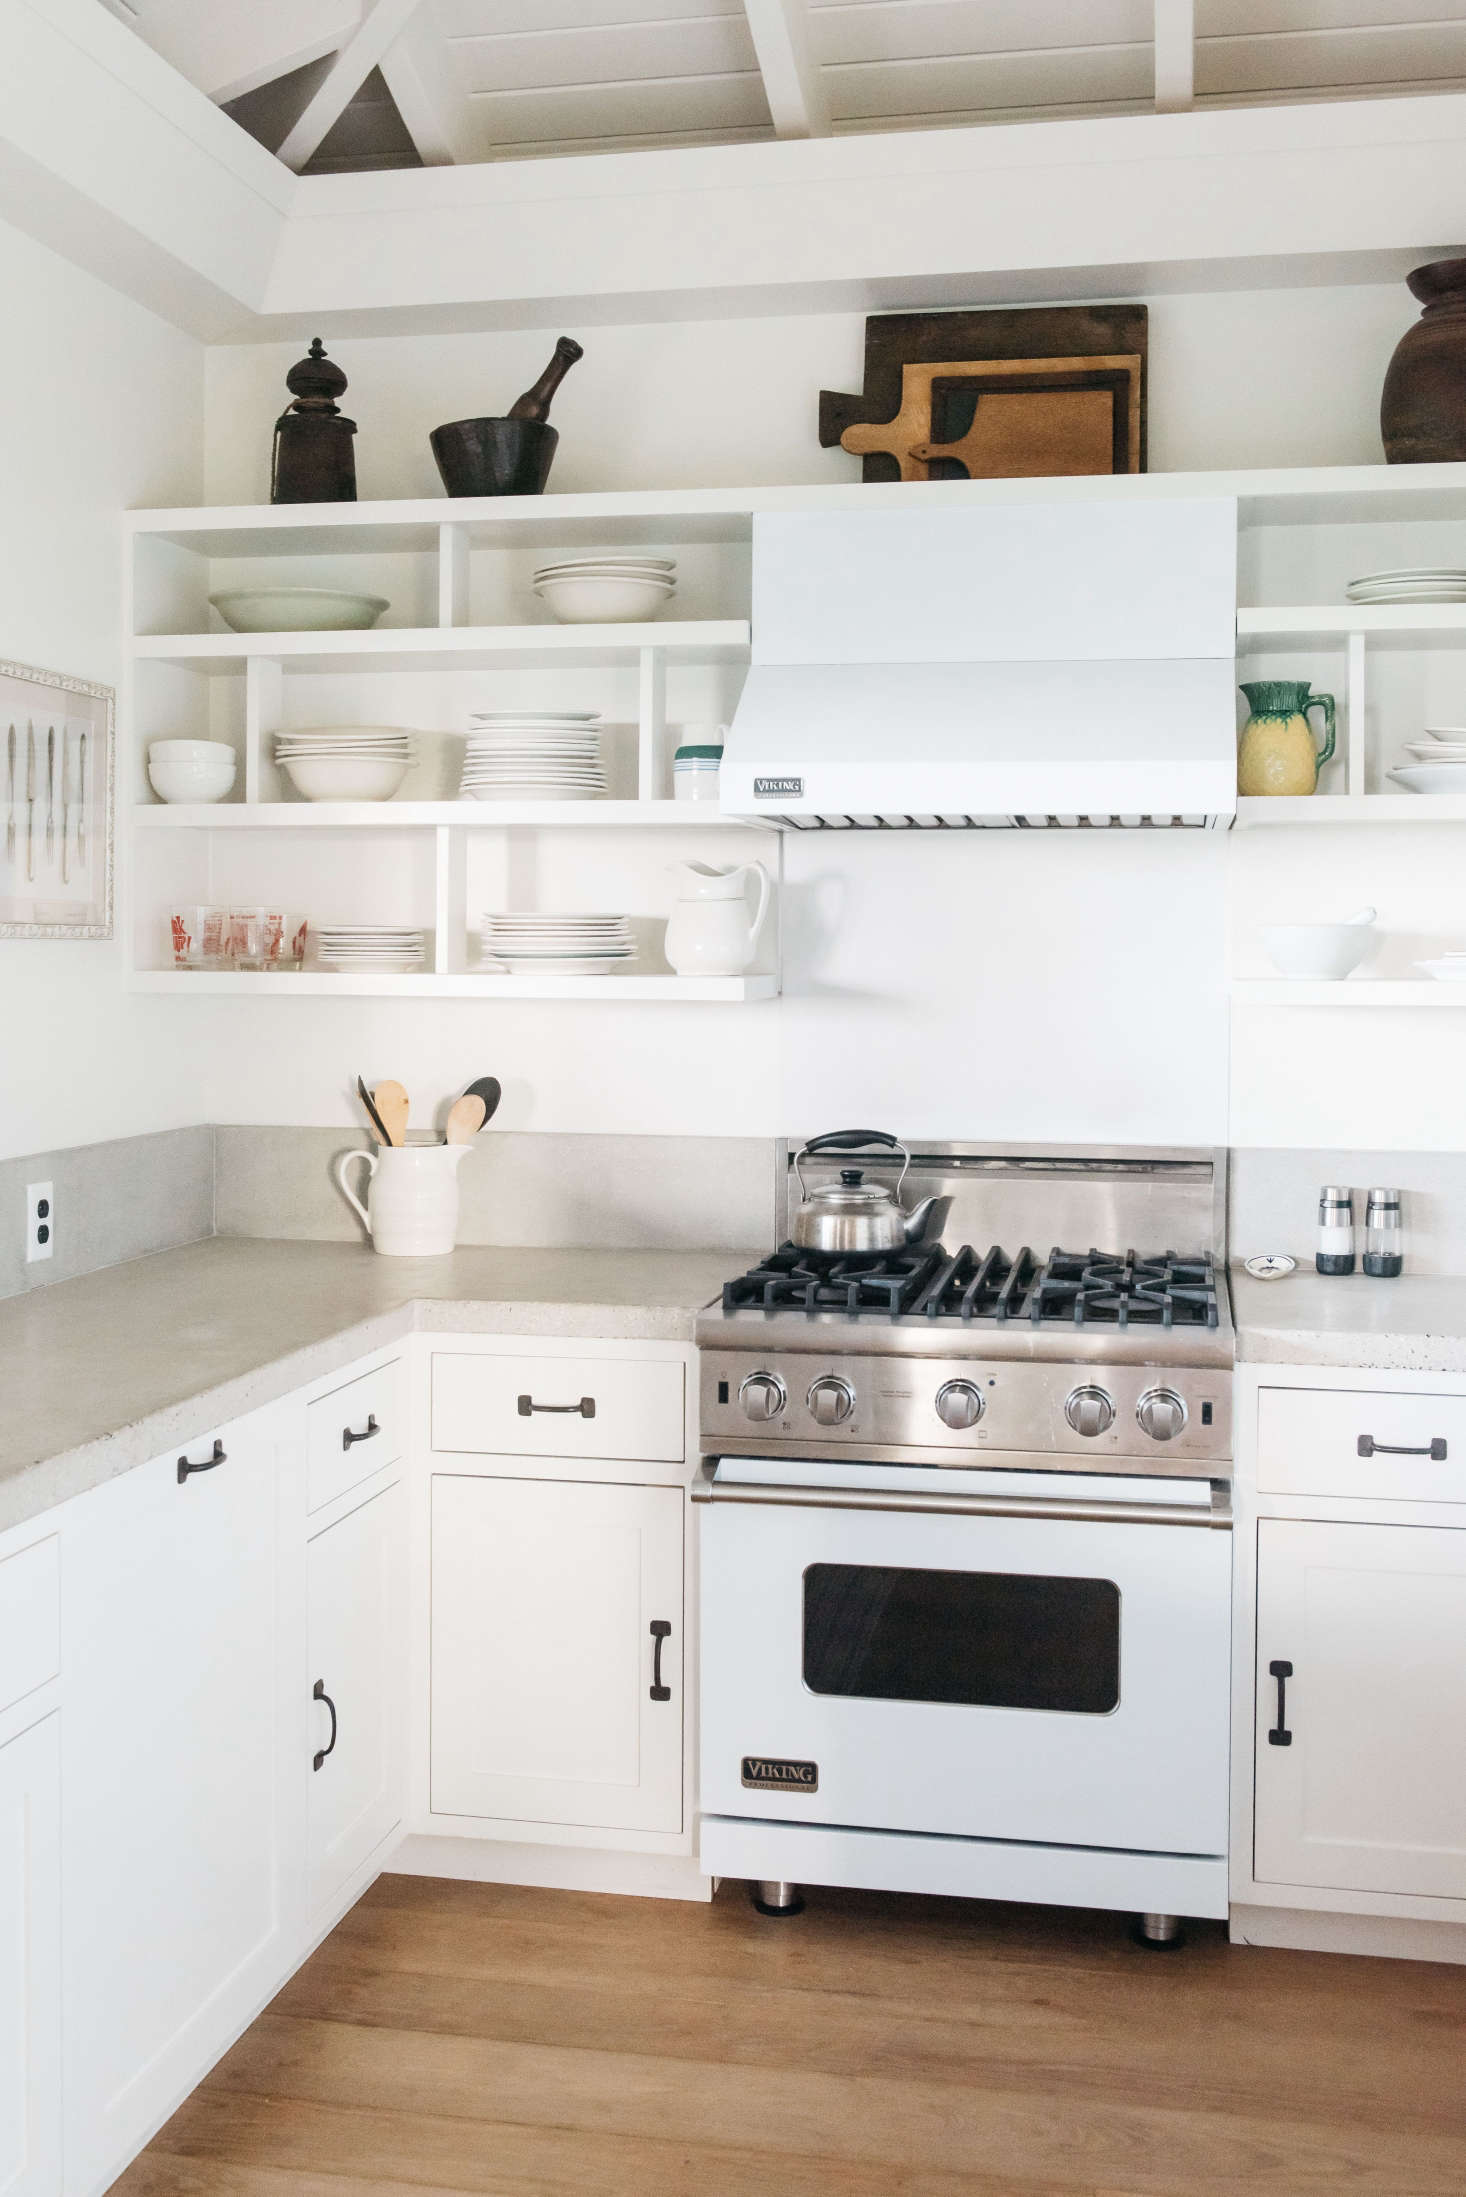 Steal This Look: A Modern, All-White Kitchen in Maui - Remodelista